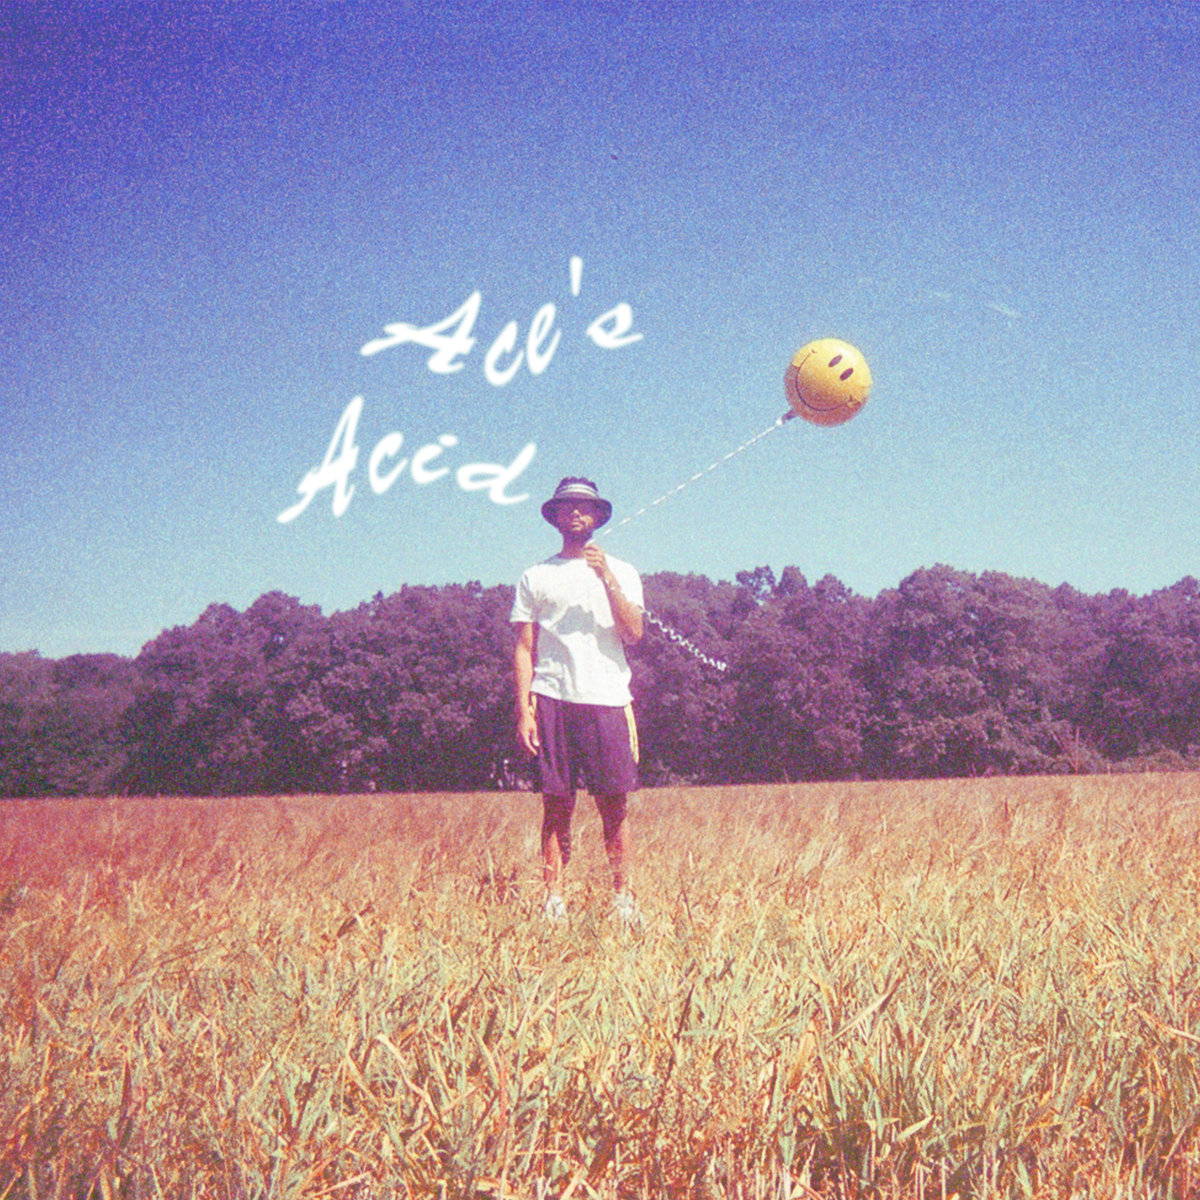 AceMo trips out on corrosive new release, Ace's Acid